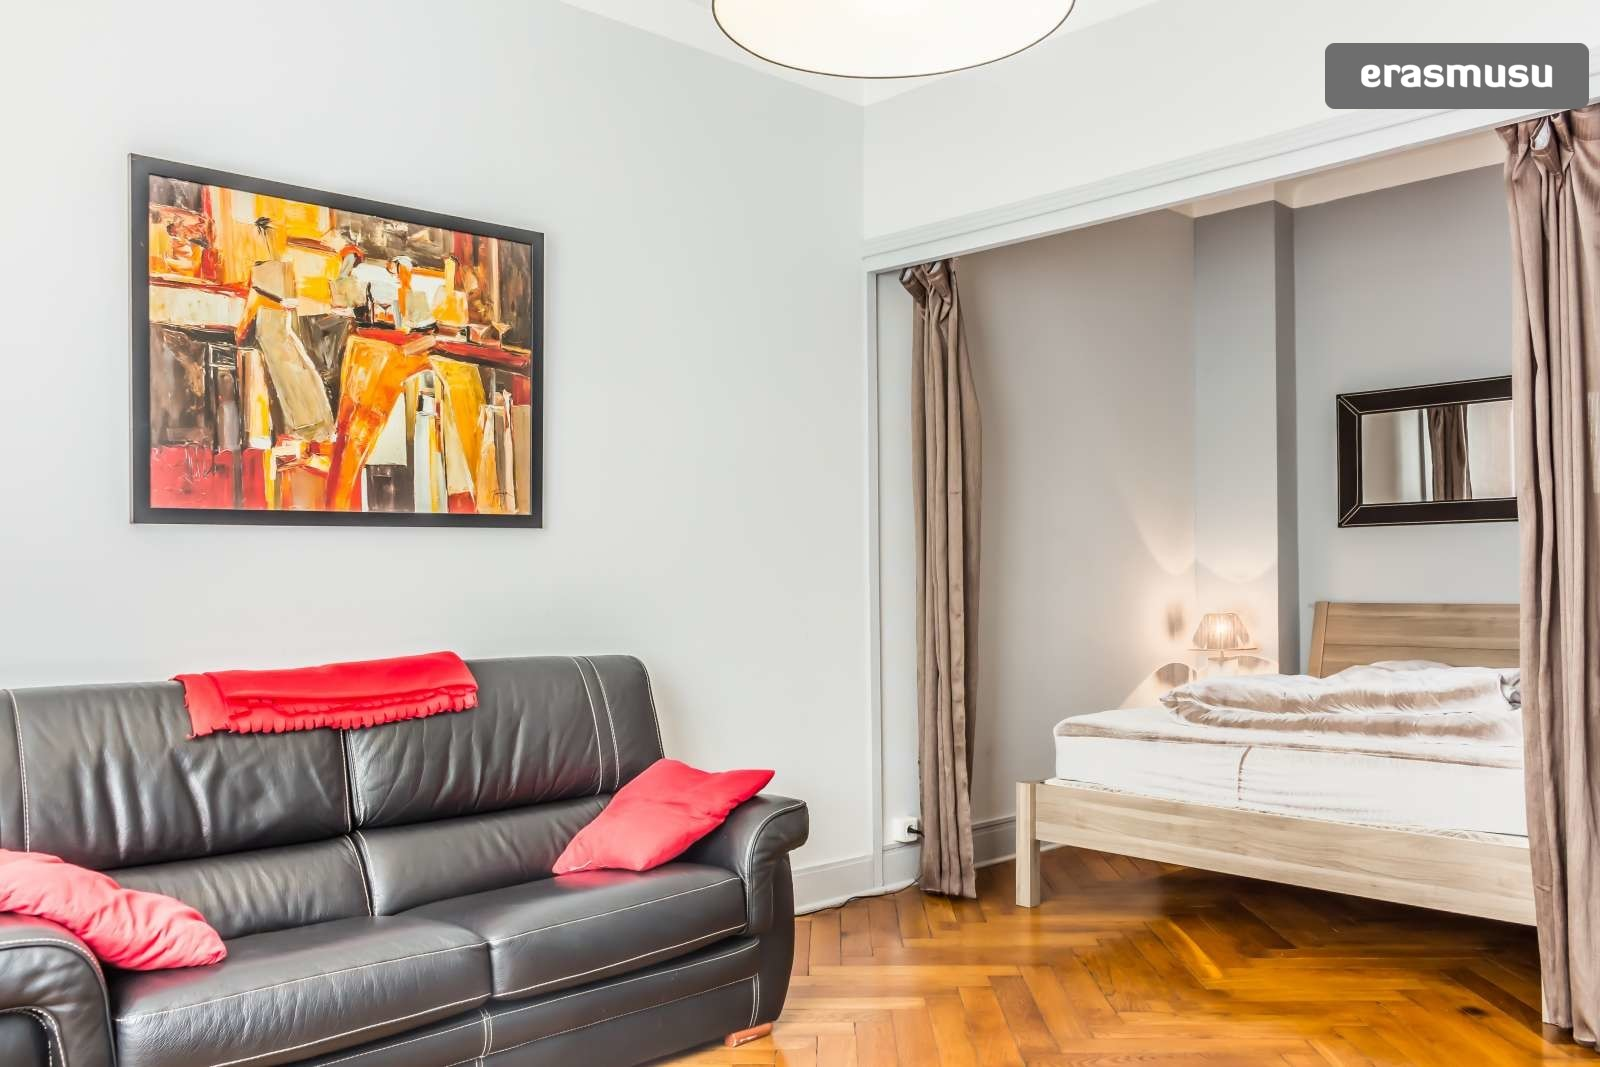 luxurious-fully-furnished-1-bedroom-apartment-rent-2916989581764